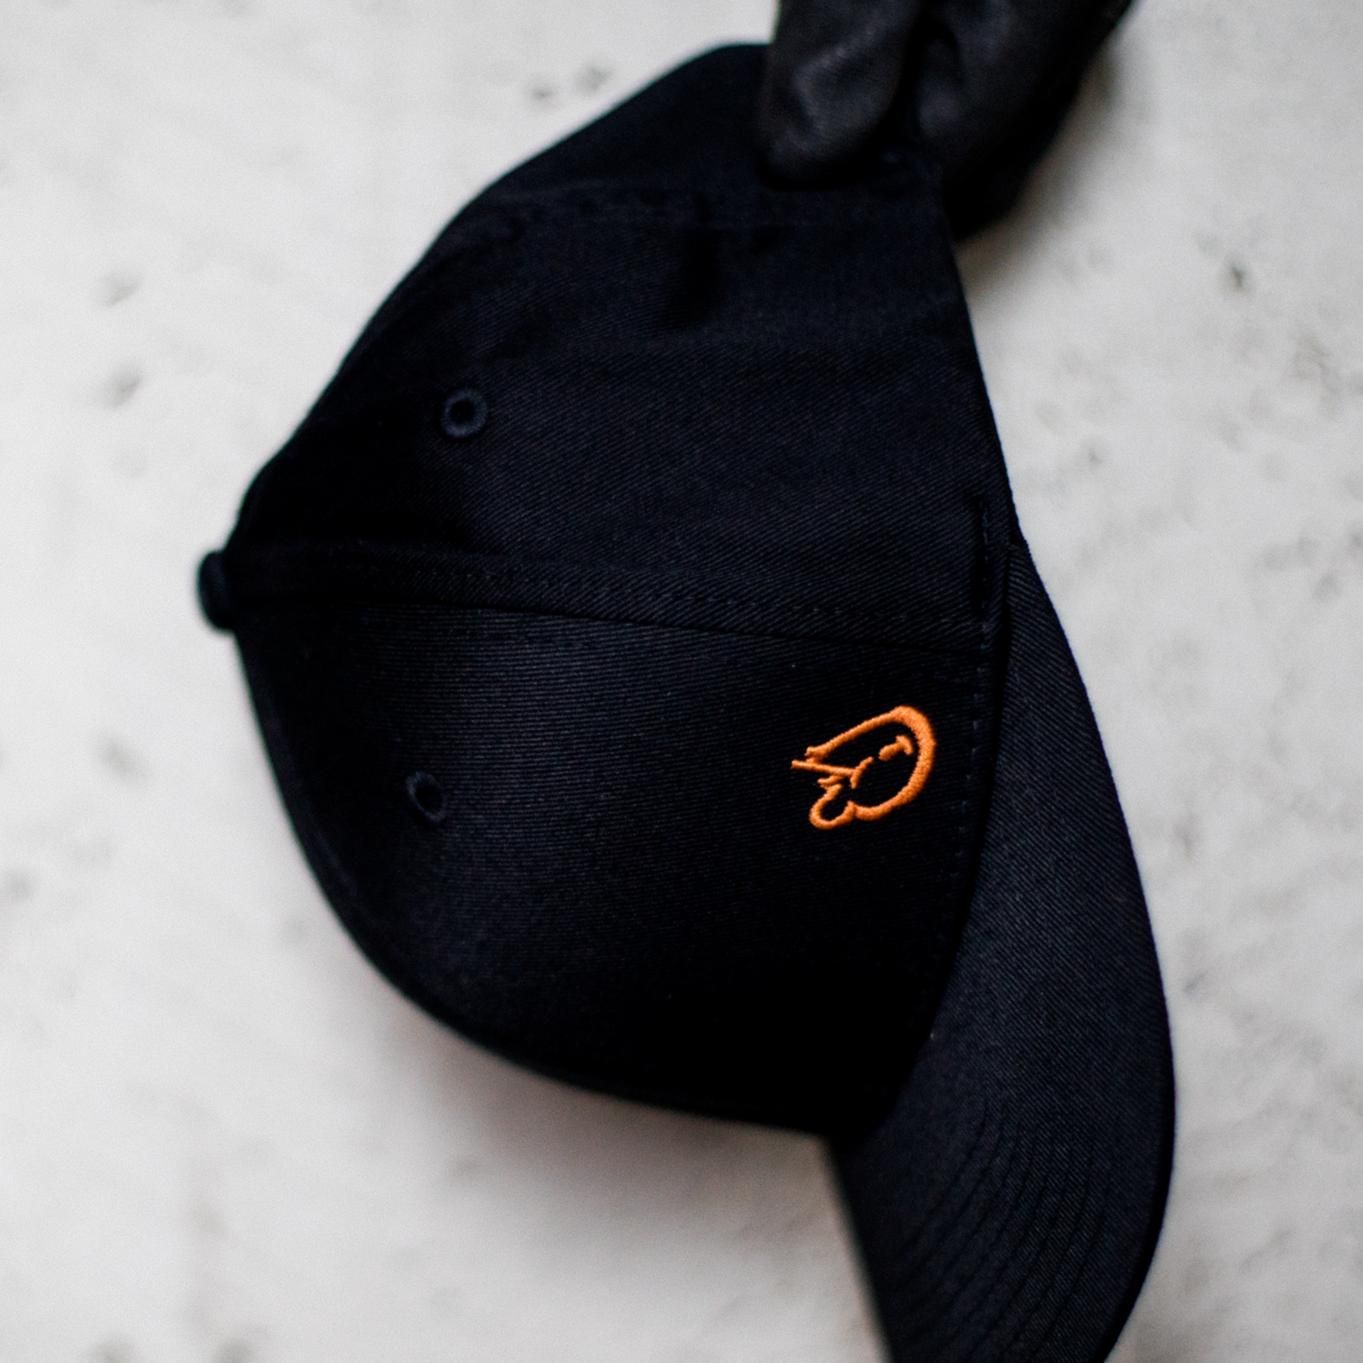 A work by Does - Cap does detail